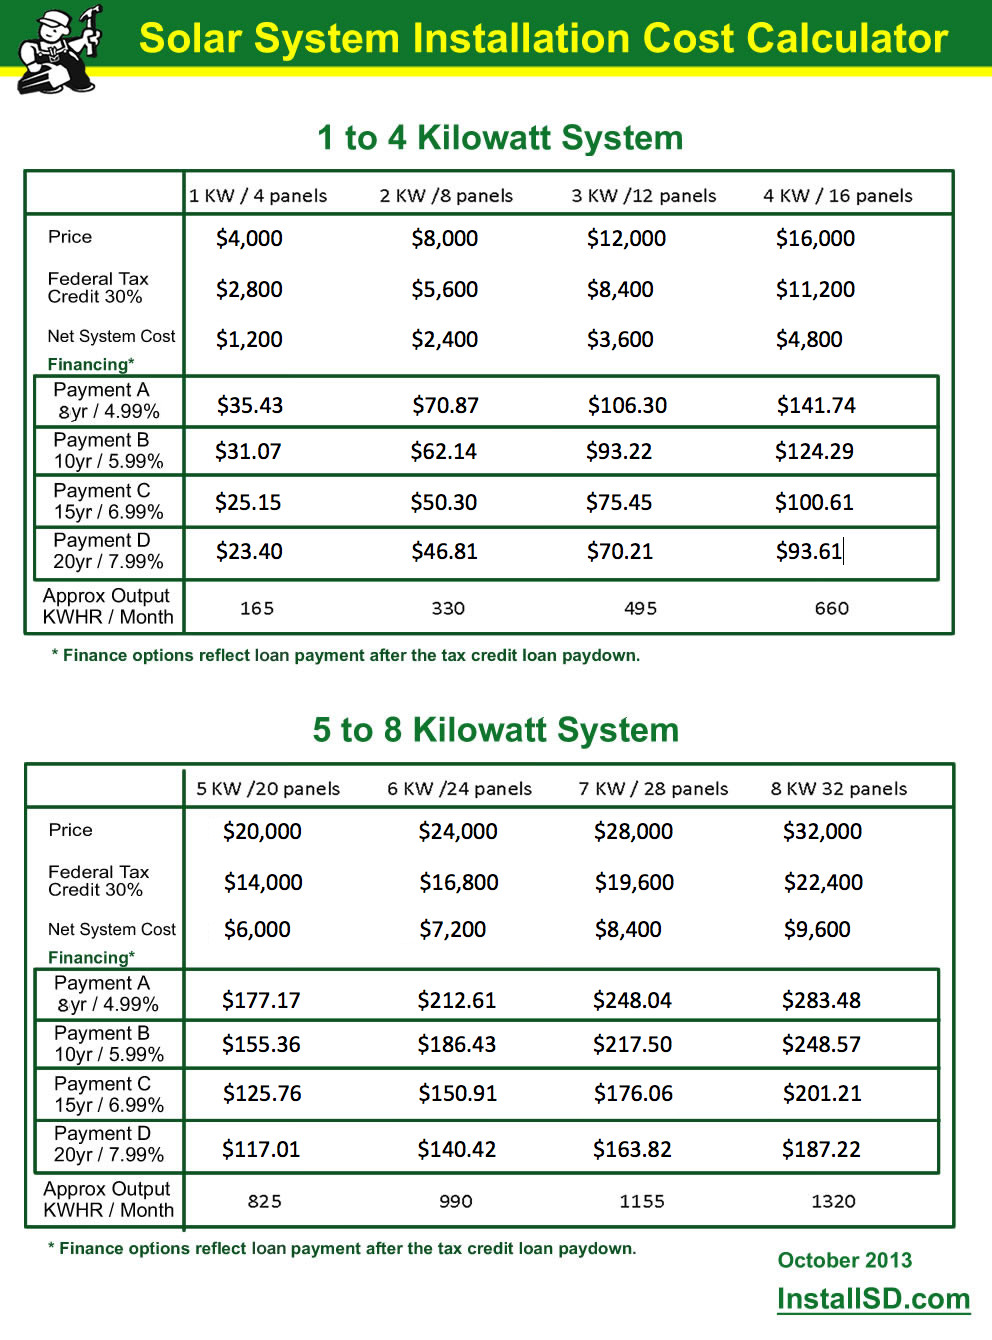 Solar System Installation Cost Calculator Chart